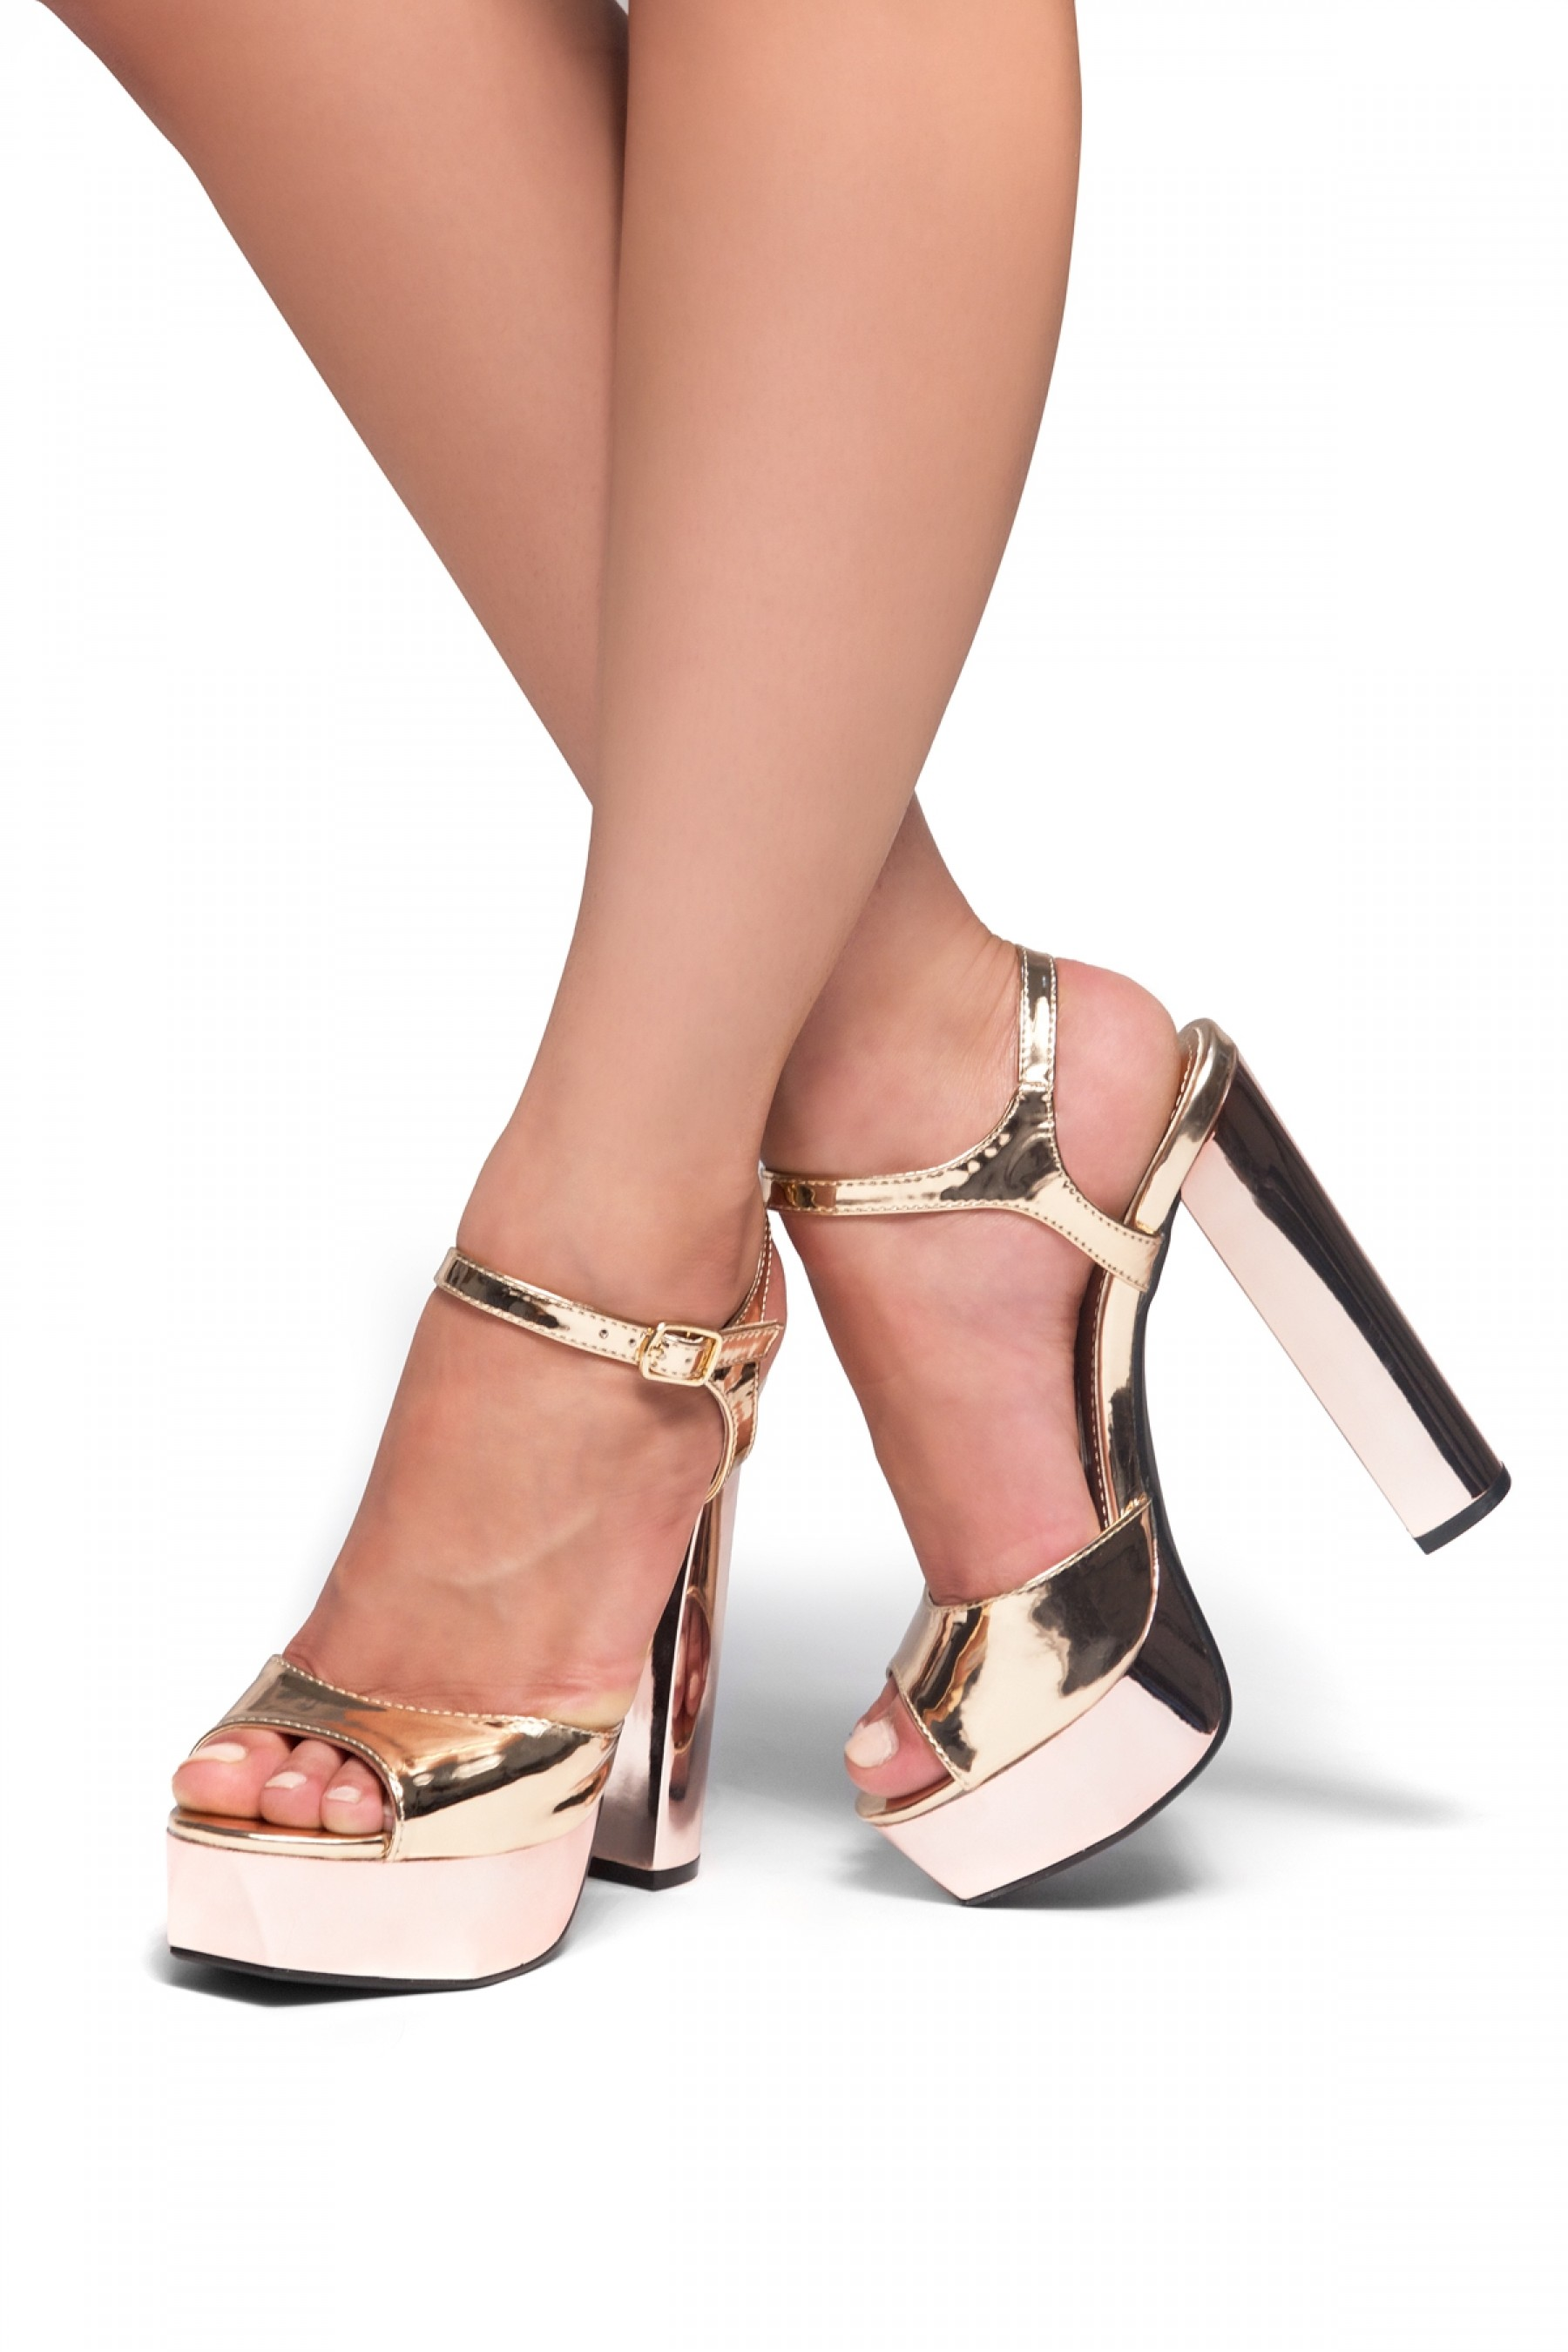 Greetta Platform, chunky heel, ankle strap (Rose Gold)